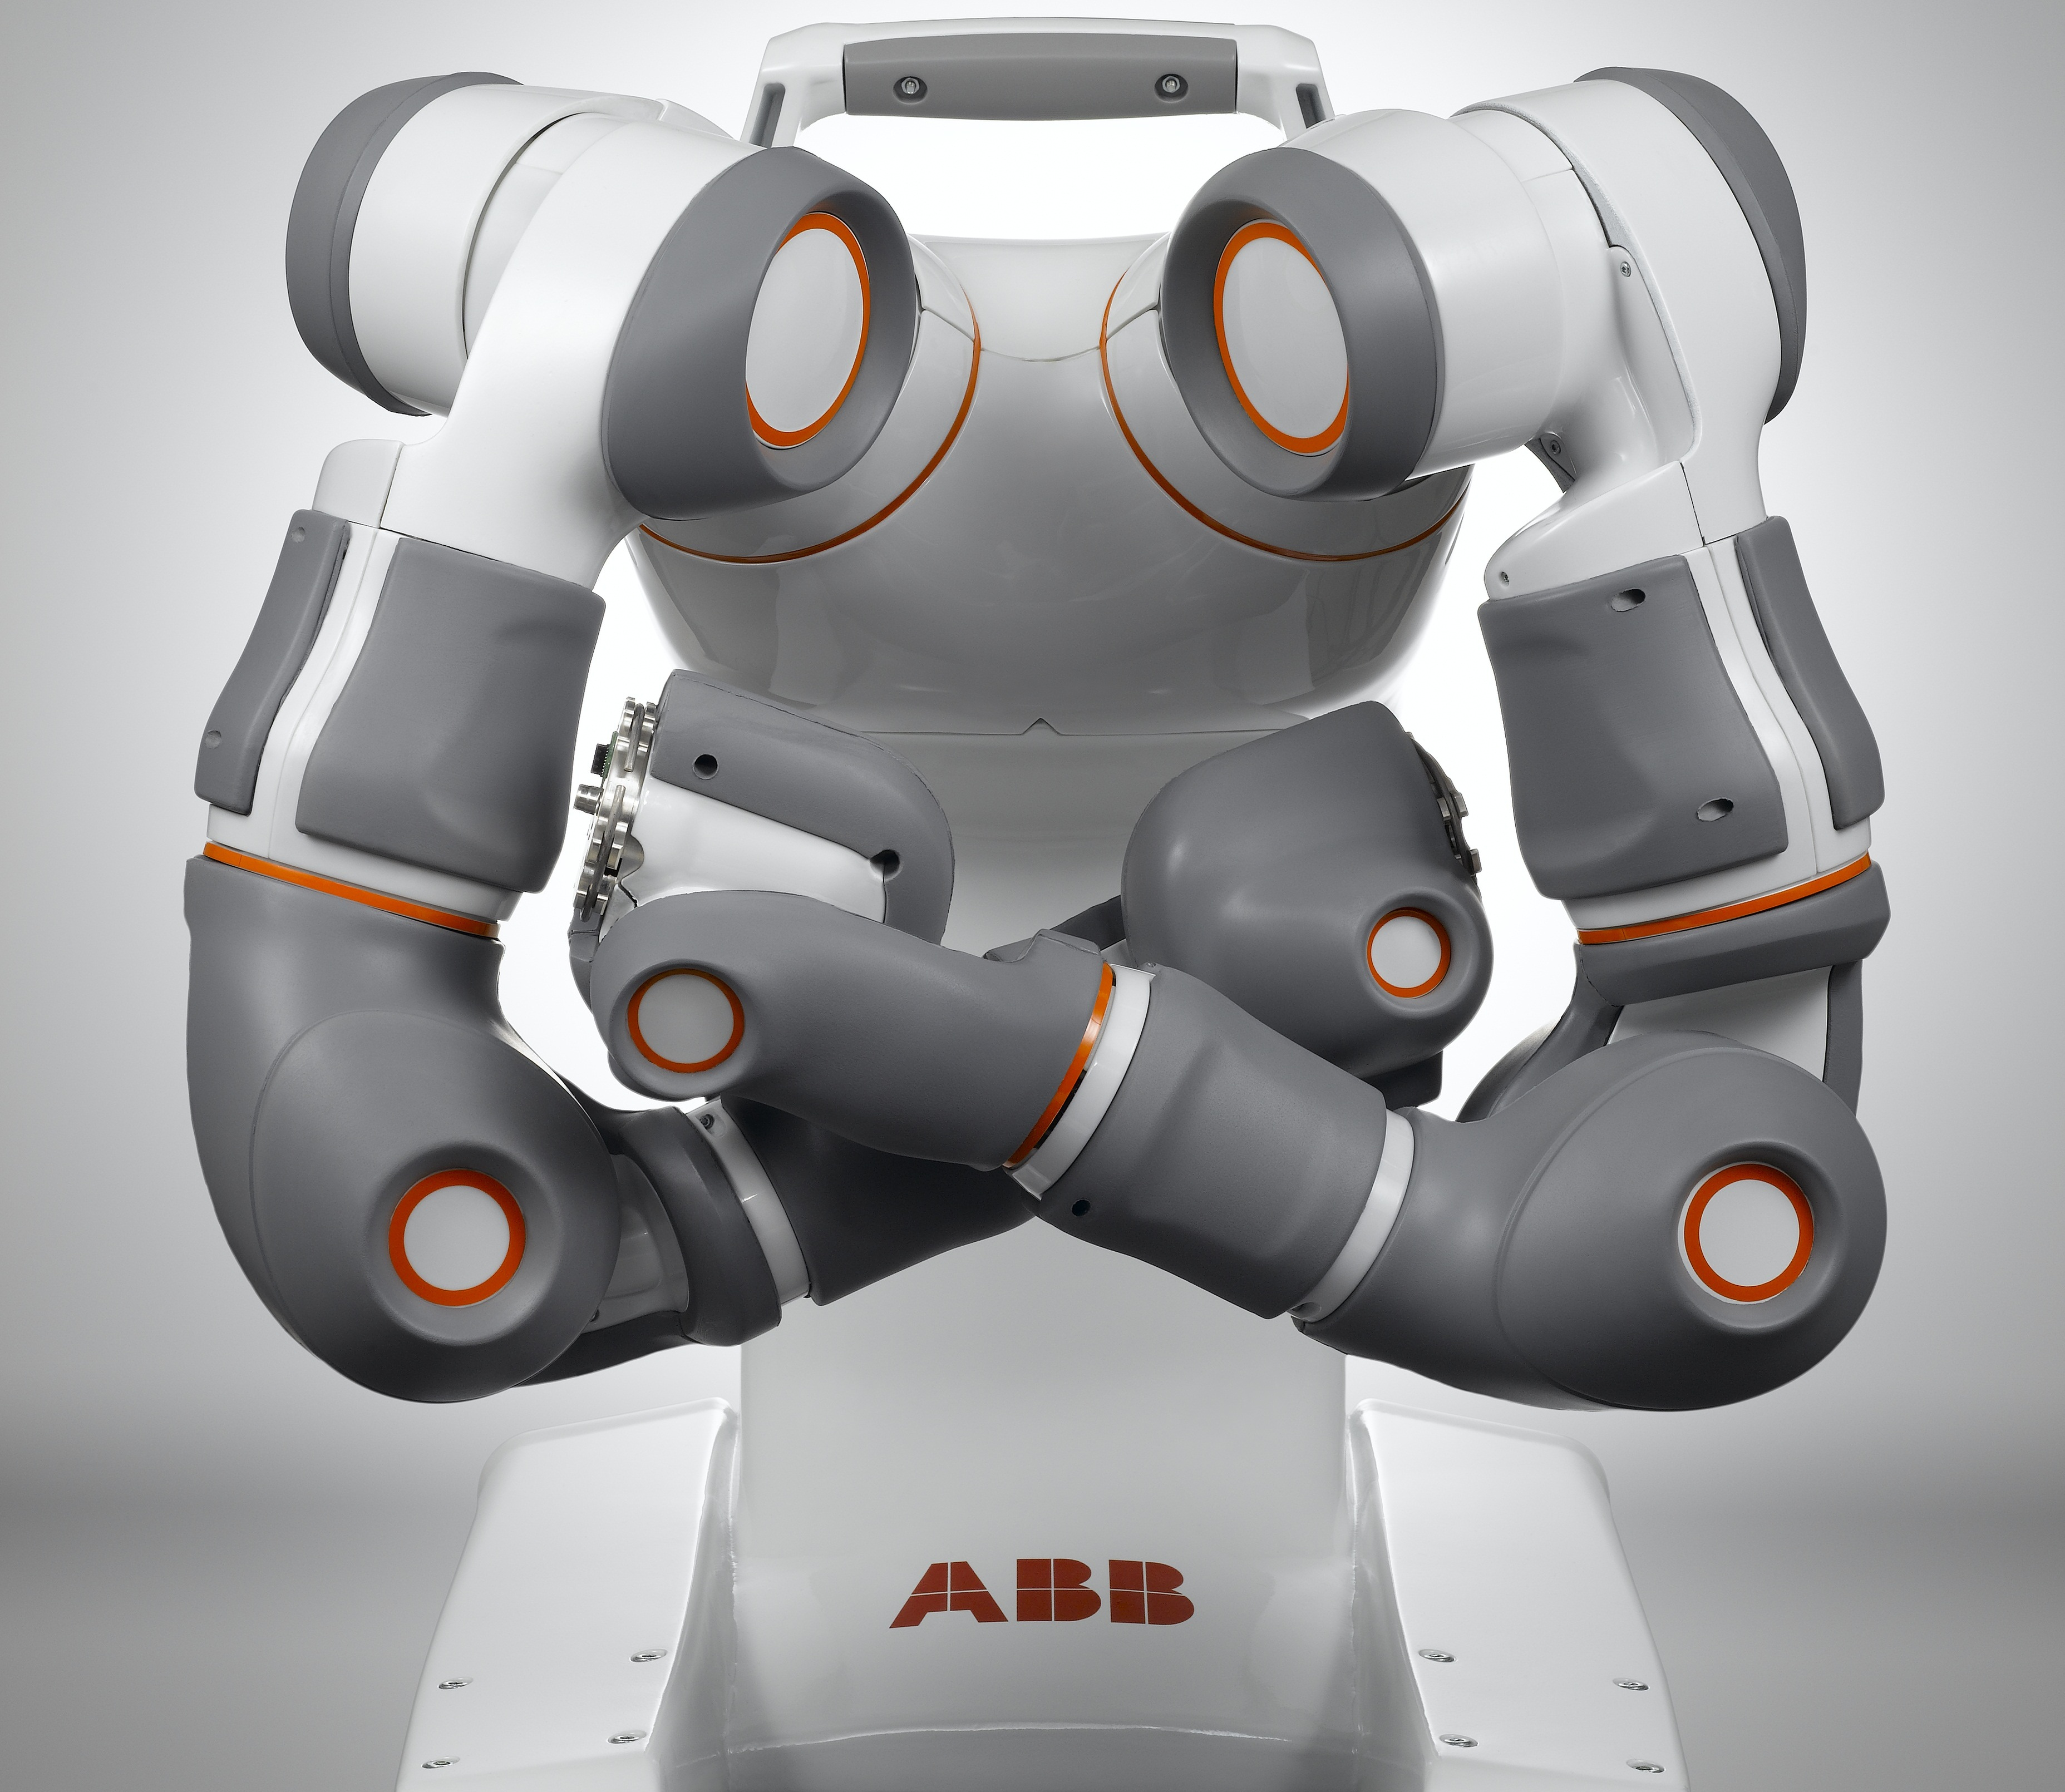 A two-armed concept robot from ABB can be carried and has sensors that allow it to work in close proximity to people.